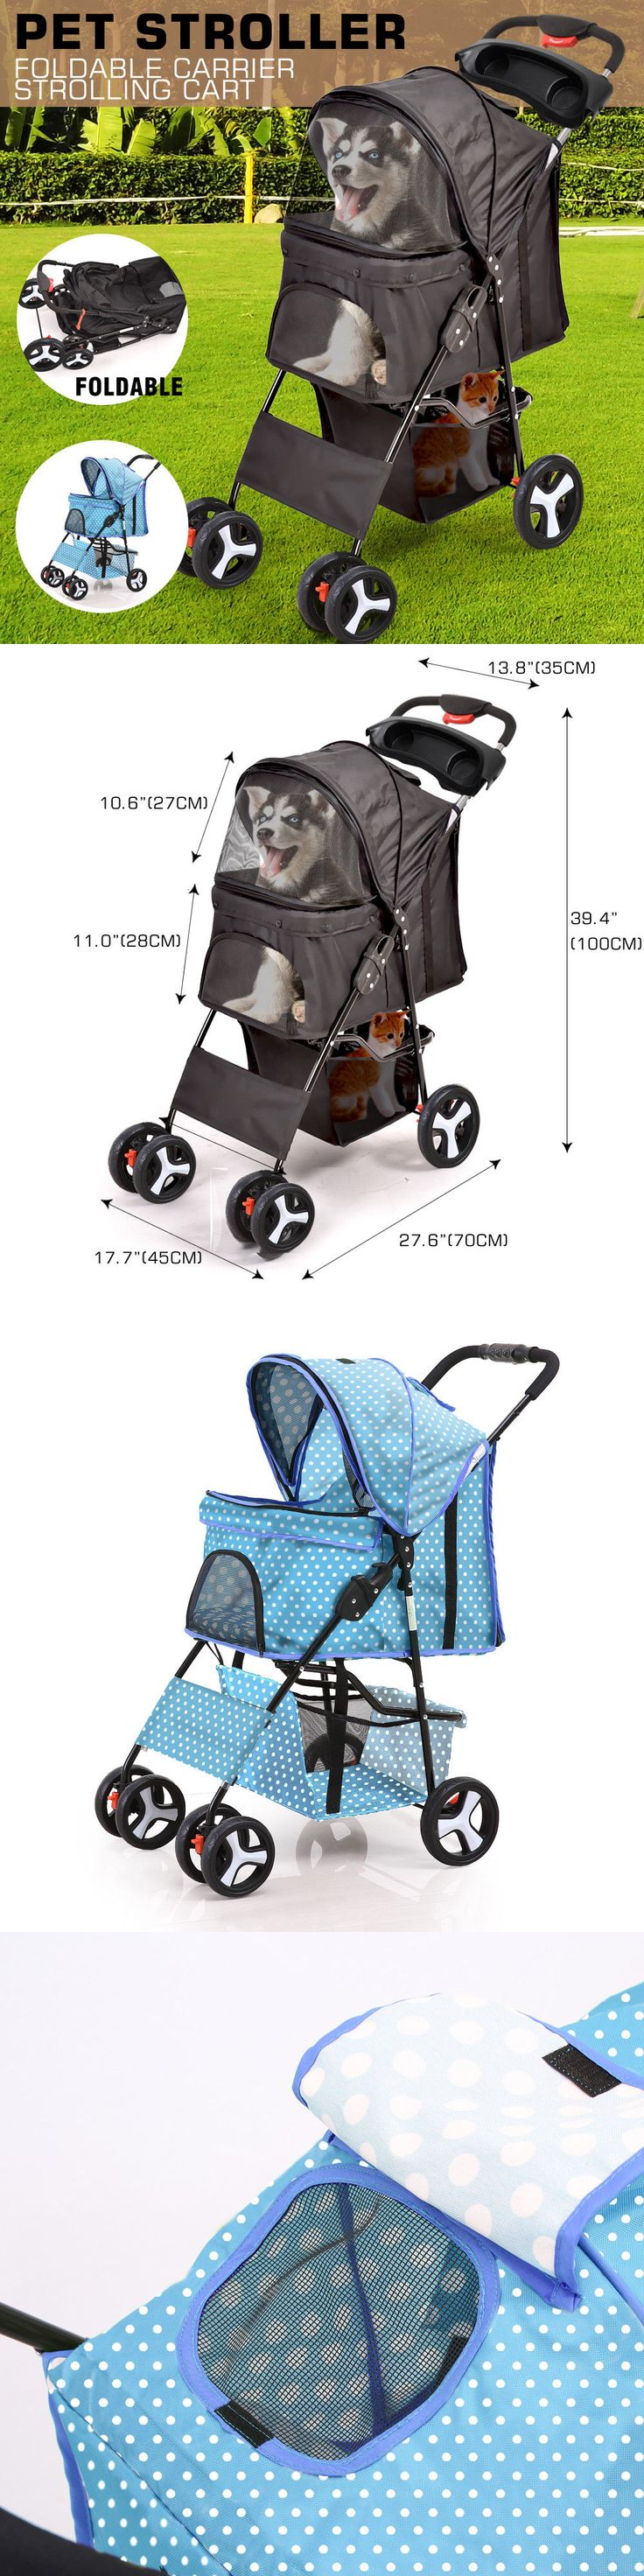 Strollers 116380: Pet Stroller Dog Cat Puppy Jogger Pushchair Travel Carrier Pram Buggy Wheels New -> BUY IT NOW ONLY: $37.95 on eBay!